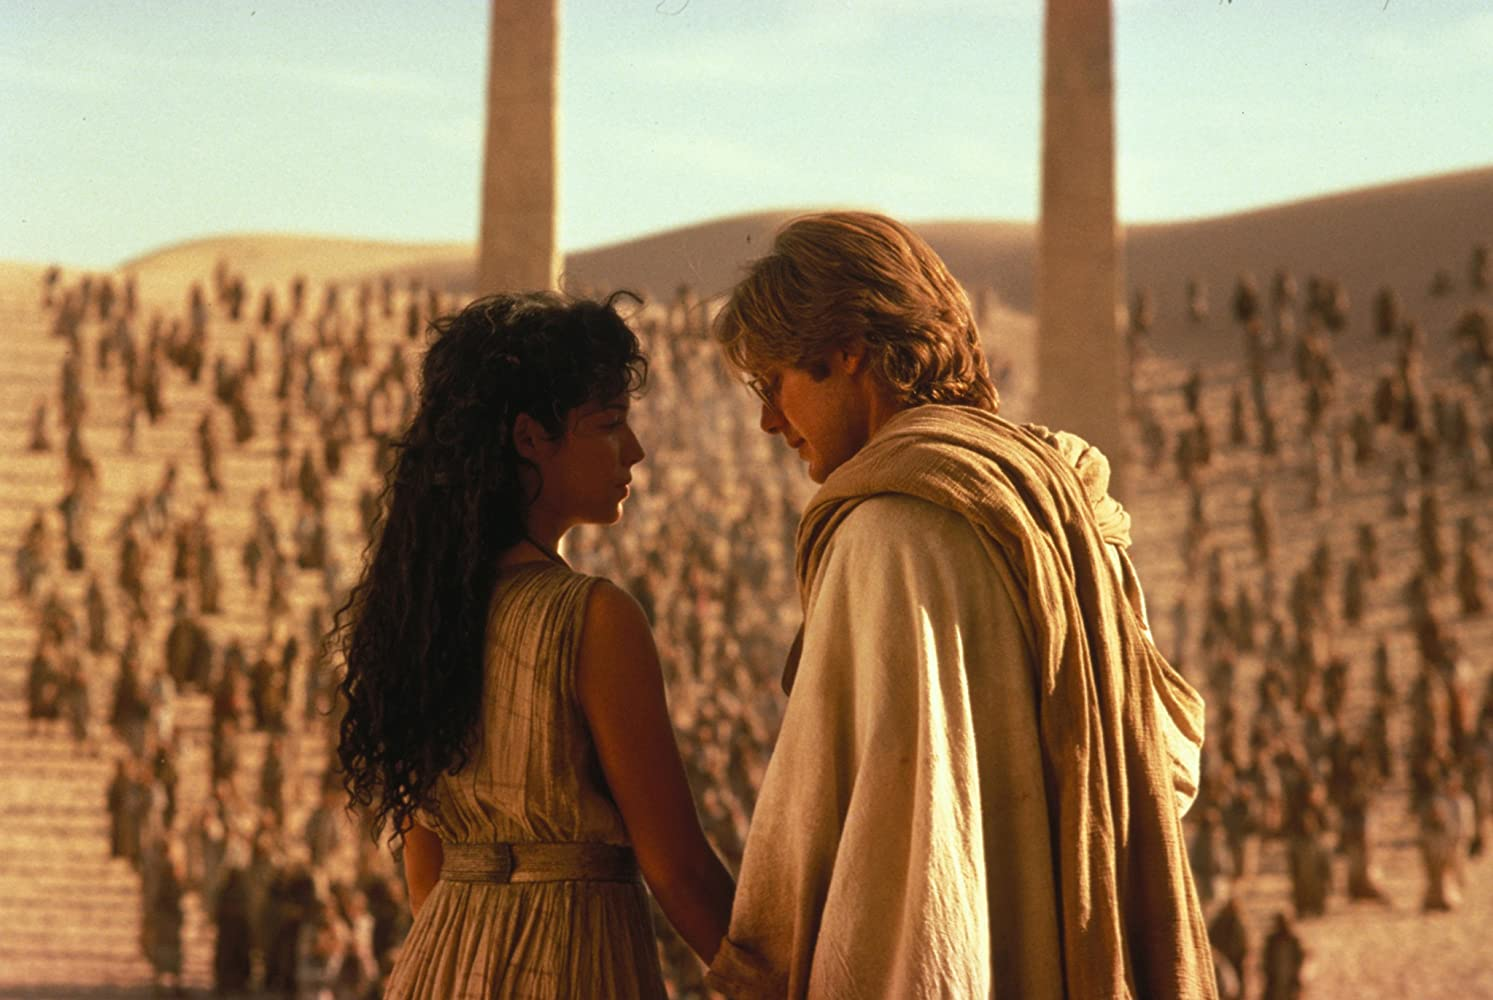 James Spader and Mili Avital in Stargate (1994)